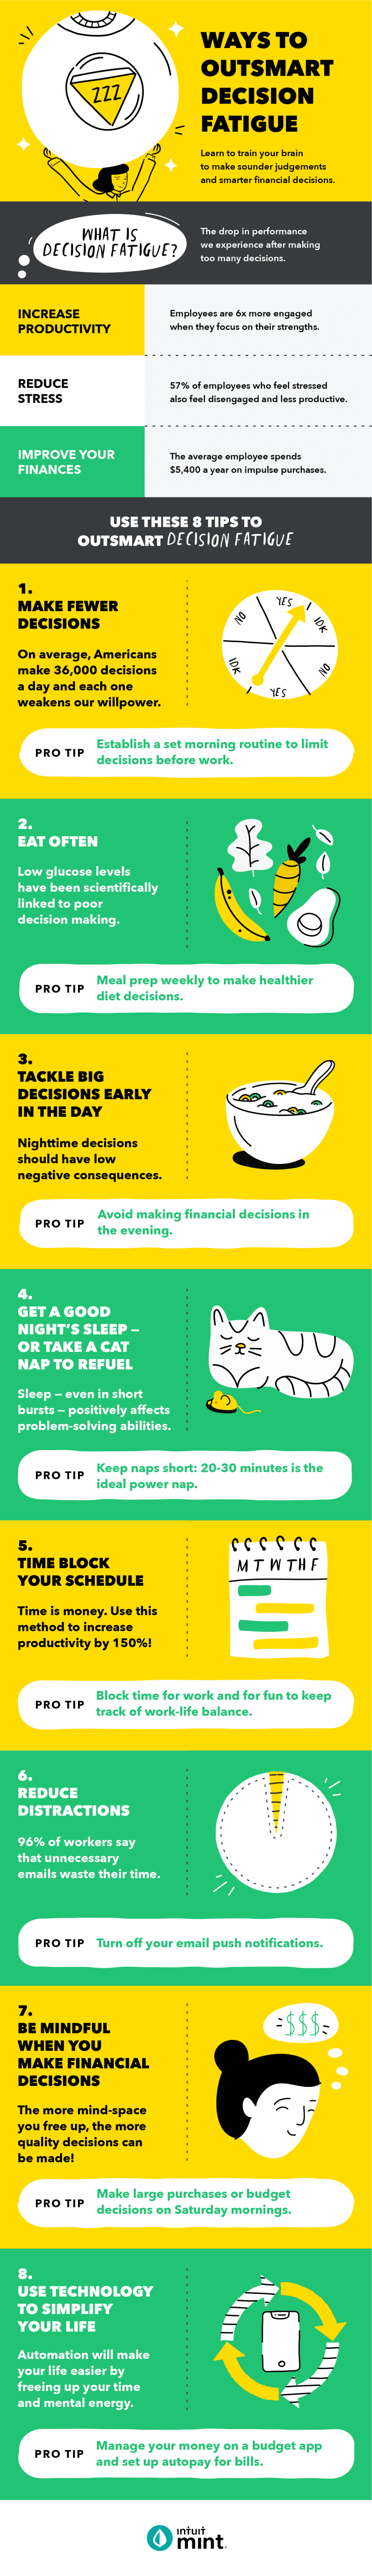 8 Ways You Can Train Your Brain to Outsmart Decision Fatigue, credit: www.mint.com